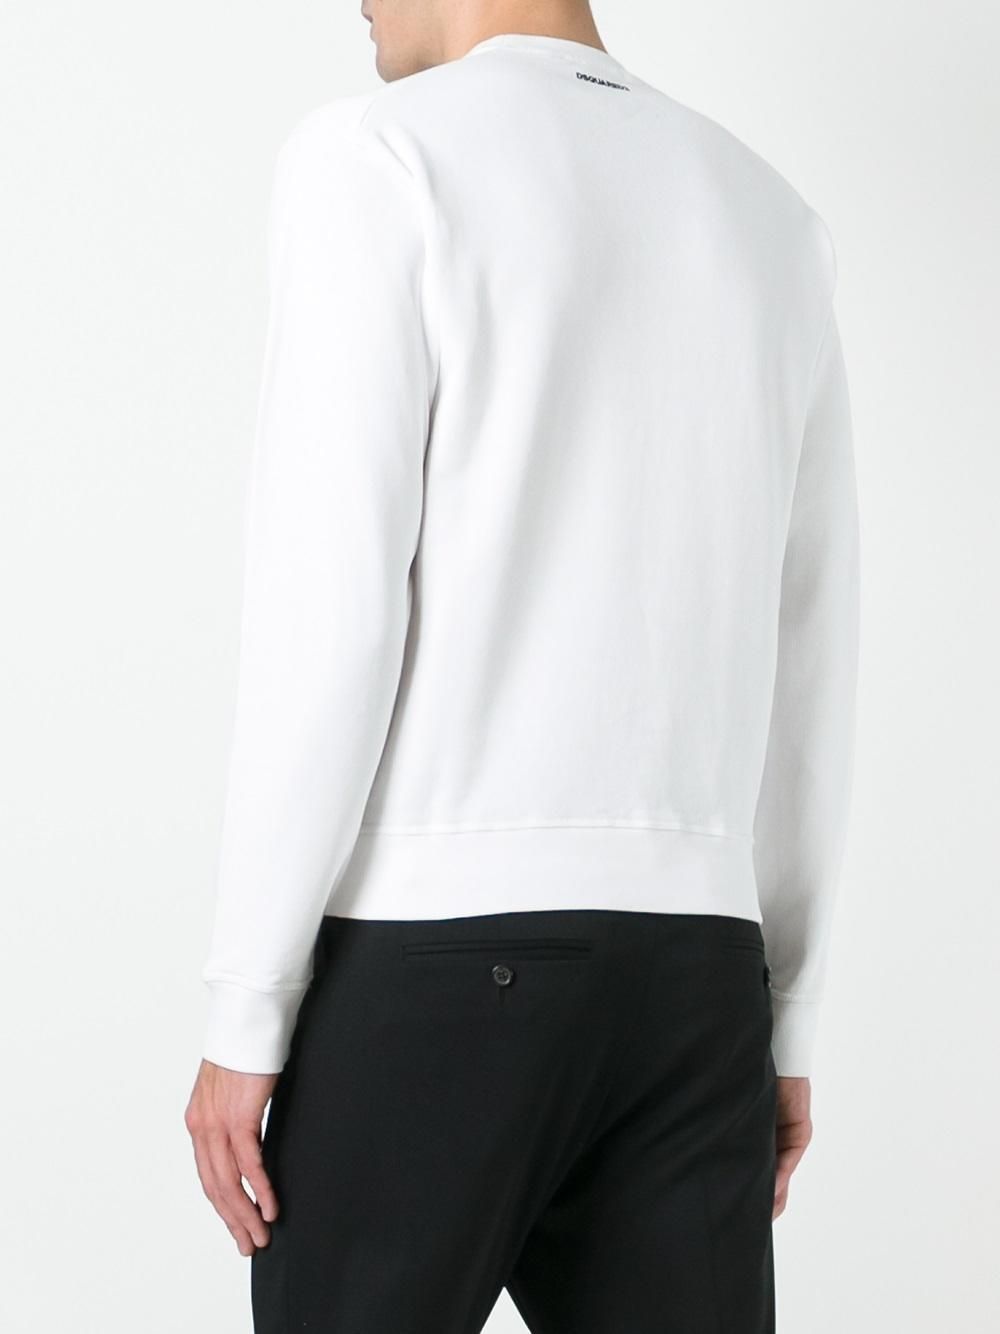 DSquared² Cotton 1964 Twins Printed Sweatshirt in White for Men